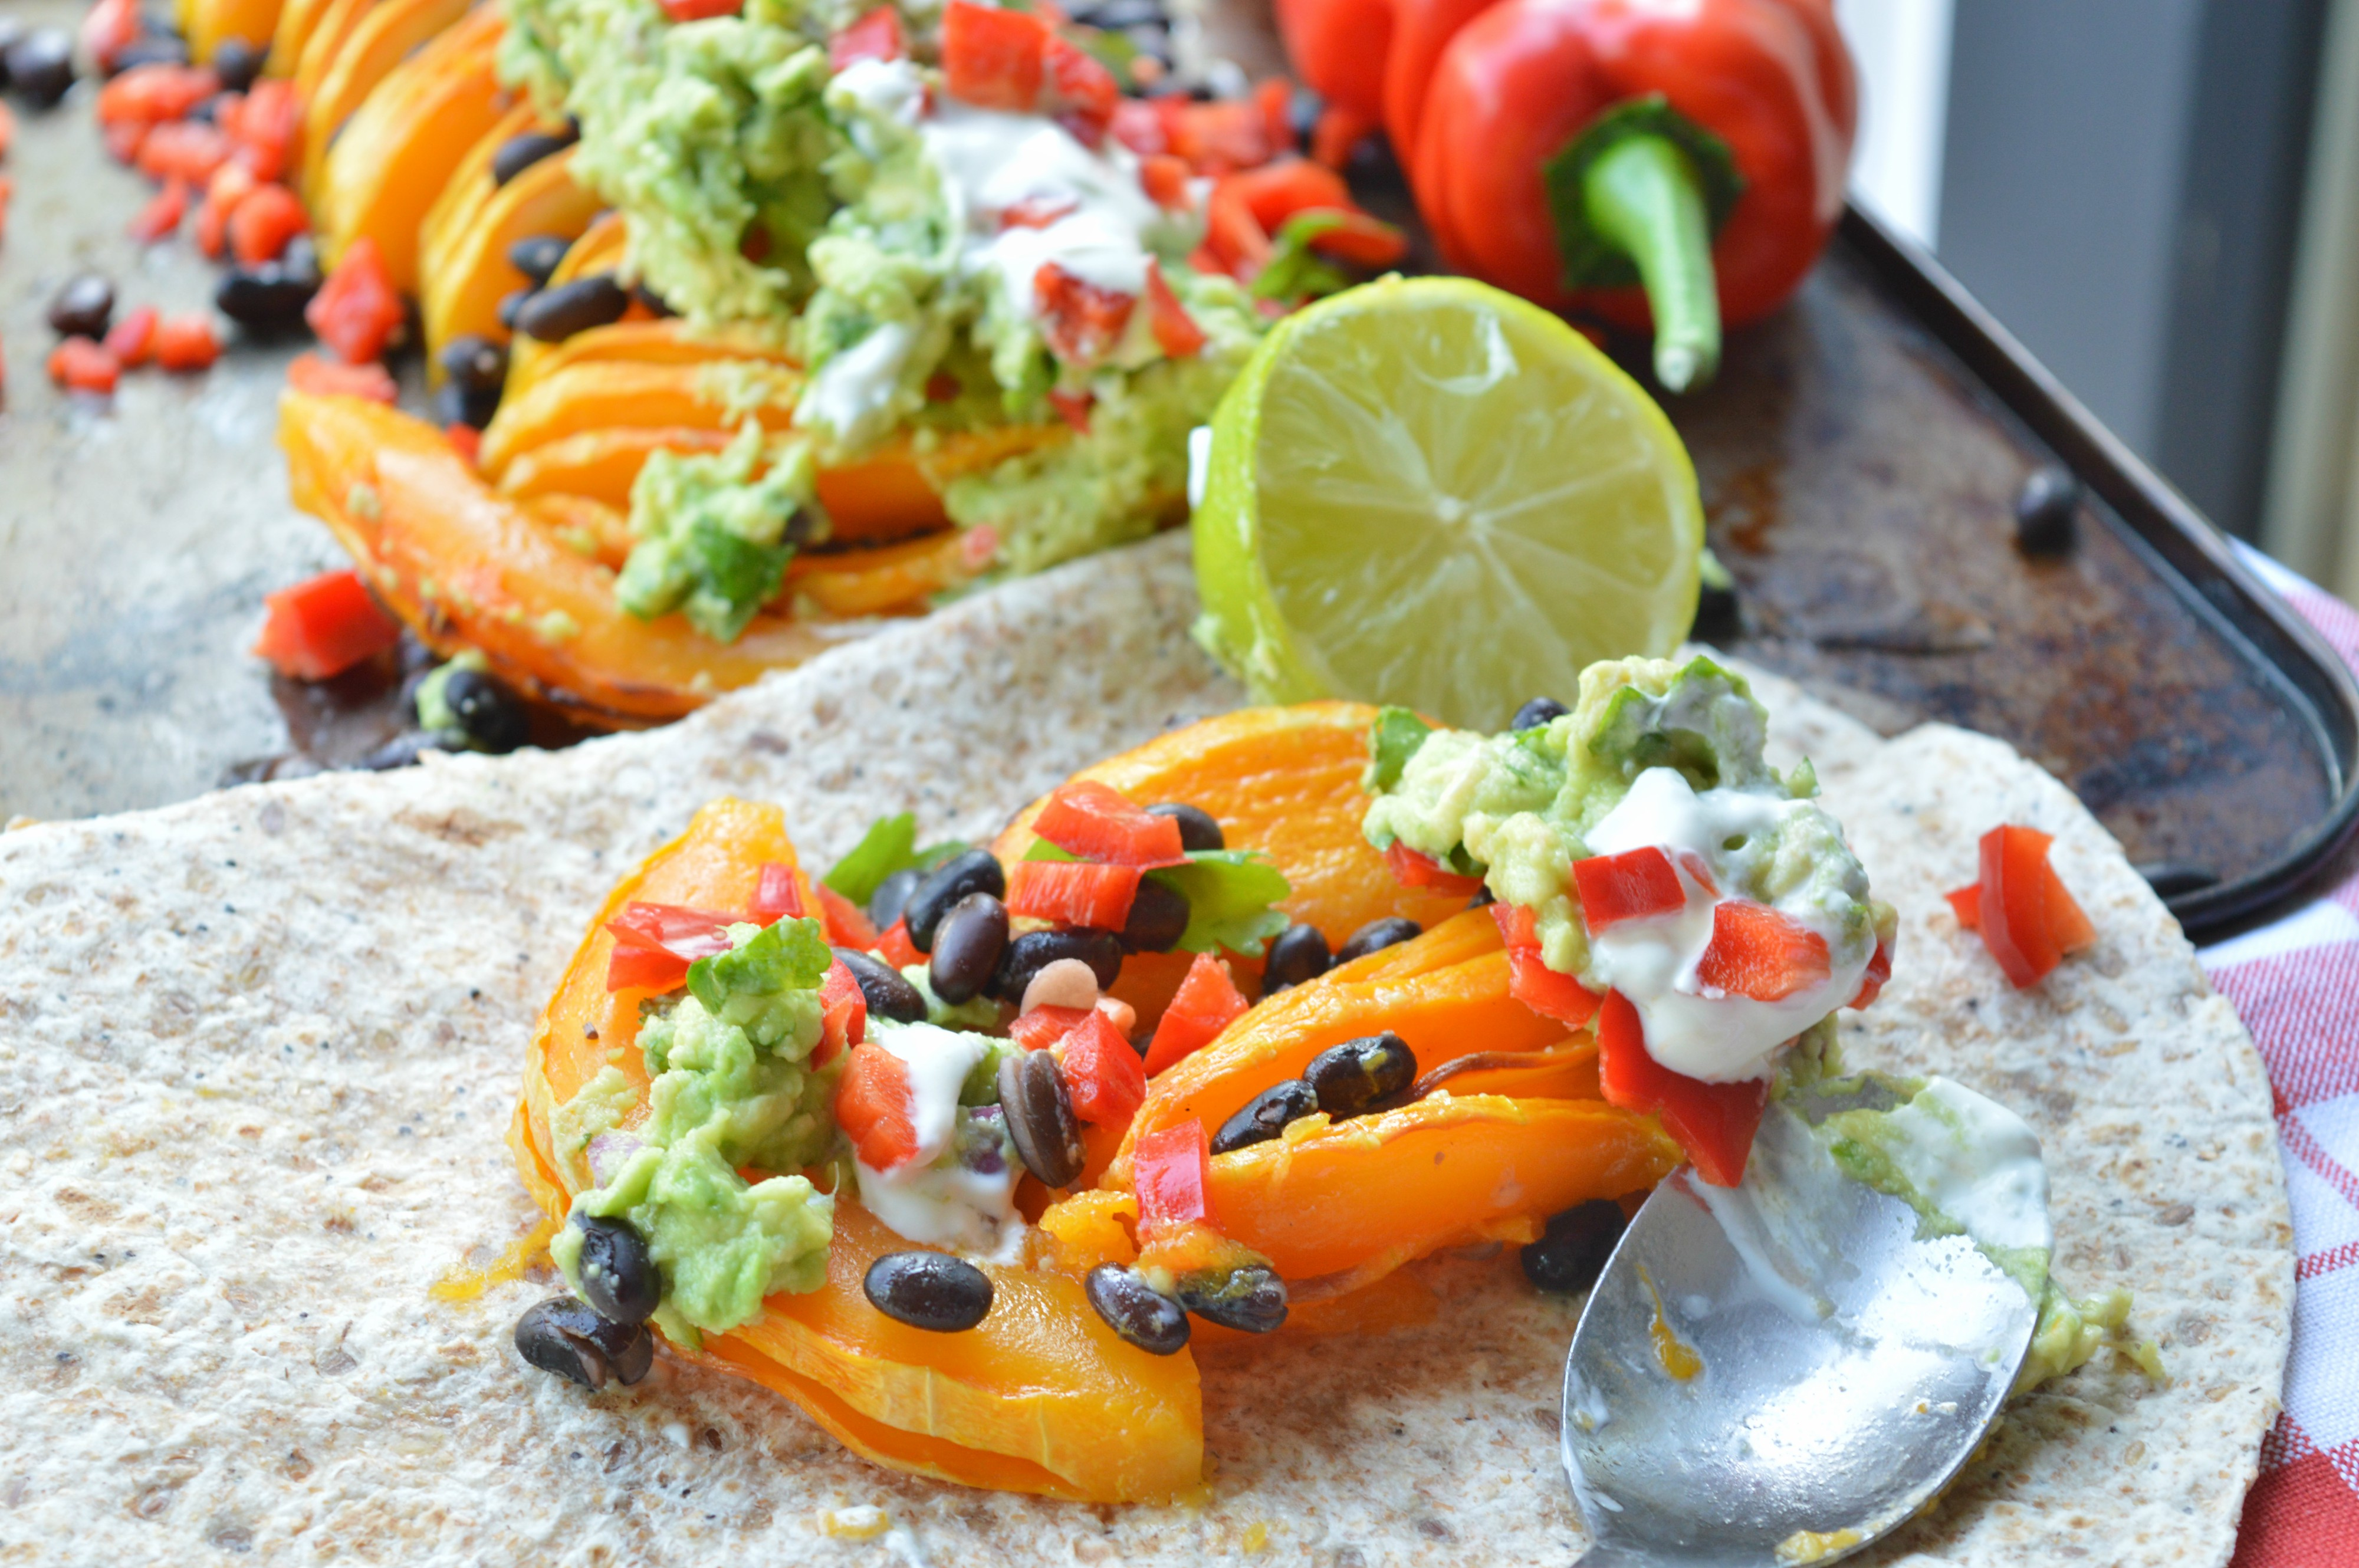 Hasselback Butternut Squash Mexican Style